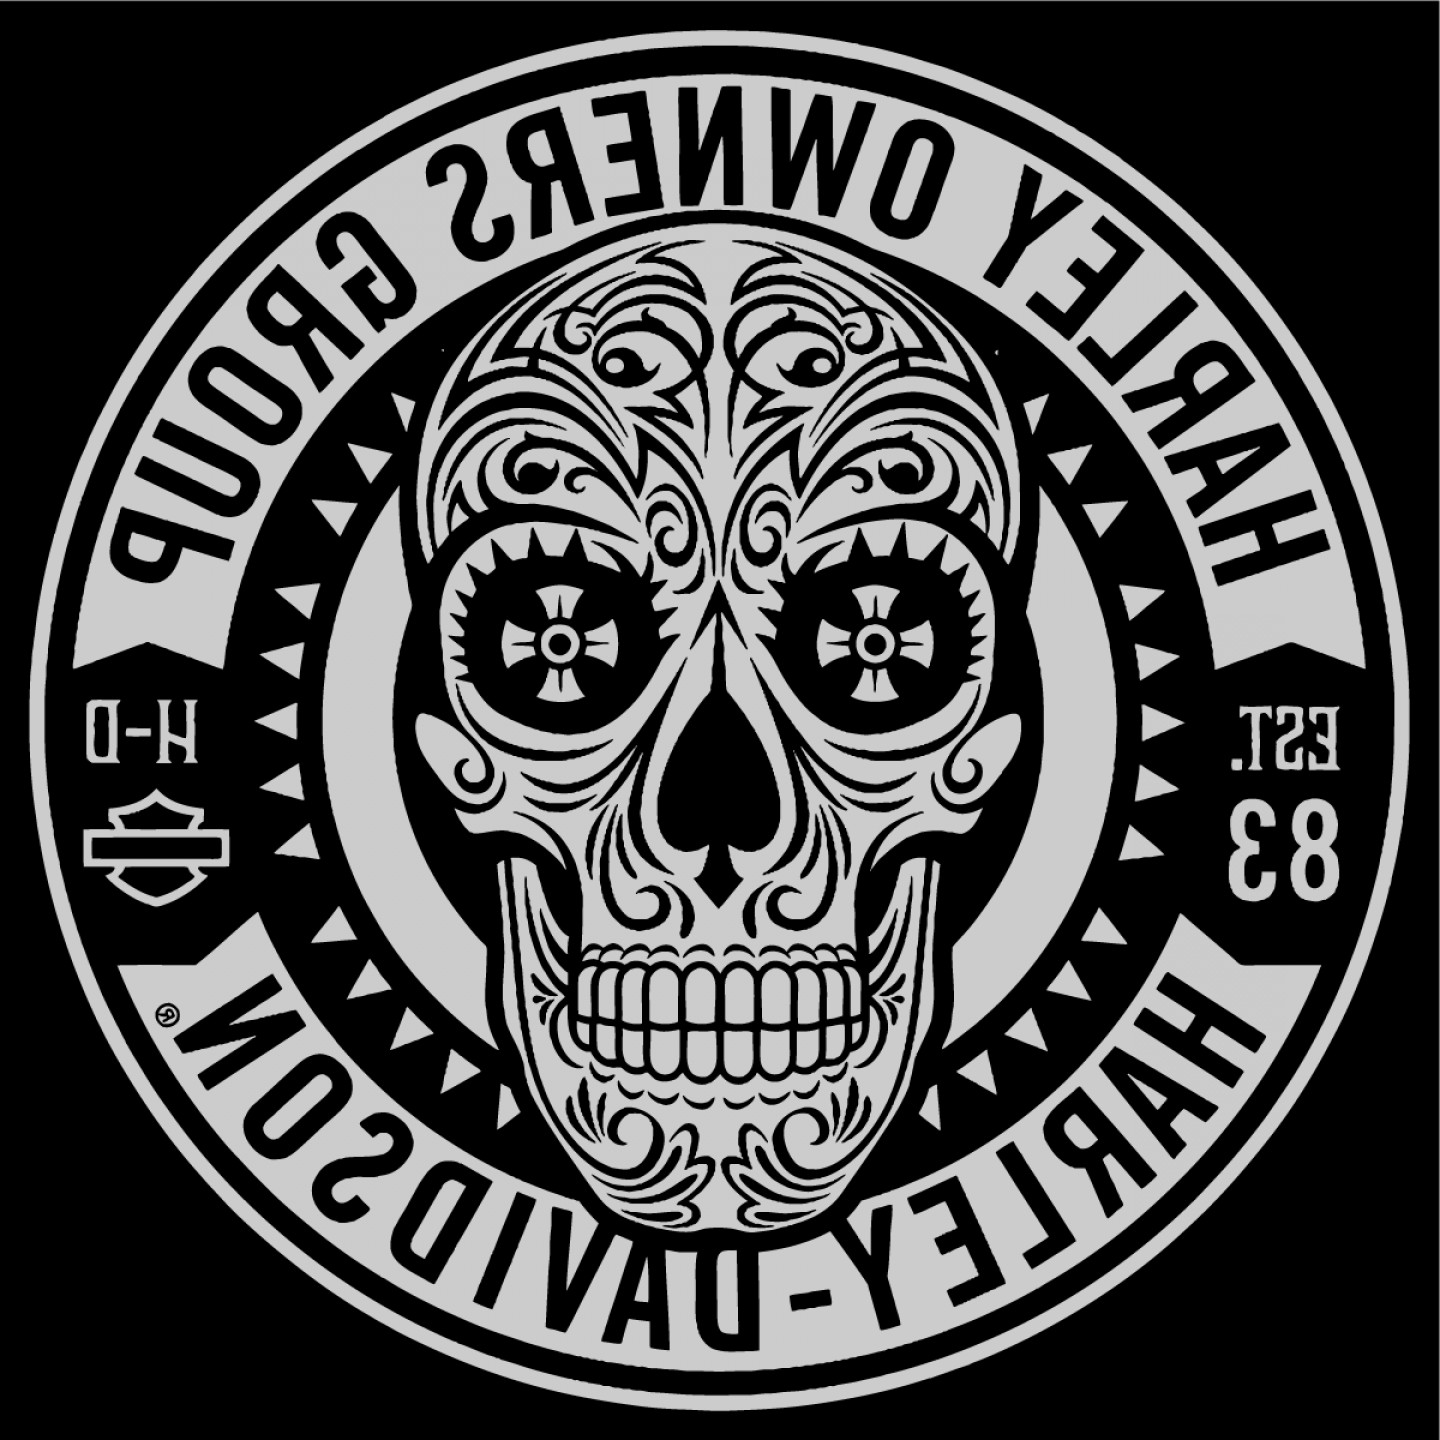 Harley-Davidson Skull Logo Vector: Harley Davidson Owners Group Skull Logo Vector Patch Sticker Badge